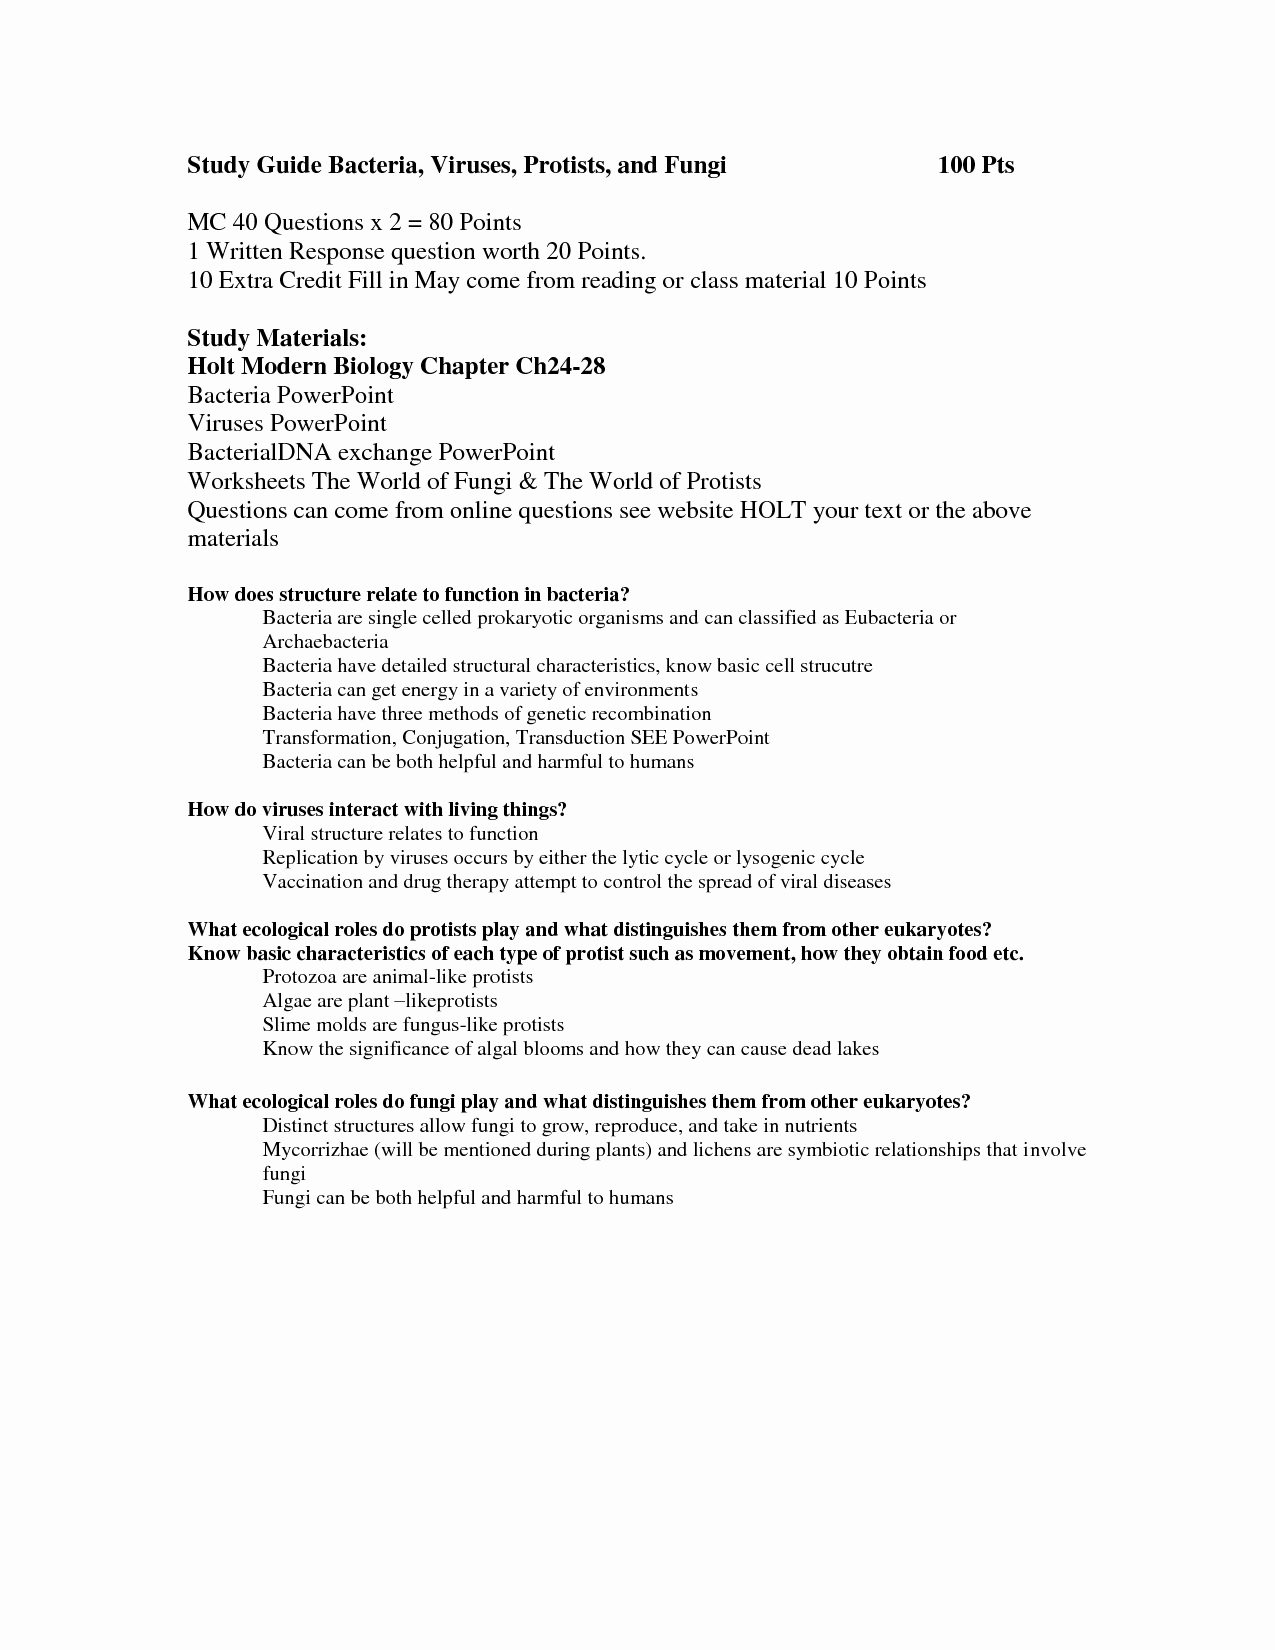 Virus and Bacteria Worksheet Answers Best Of 14 Best Of Viruses and Bacteria Worksheets